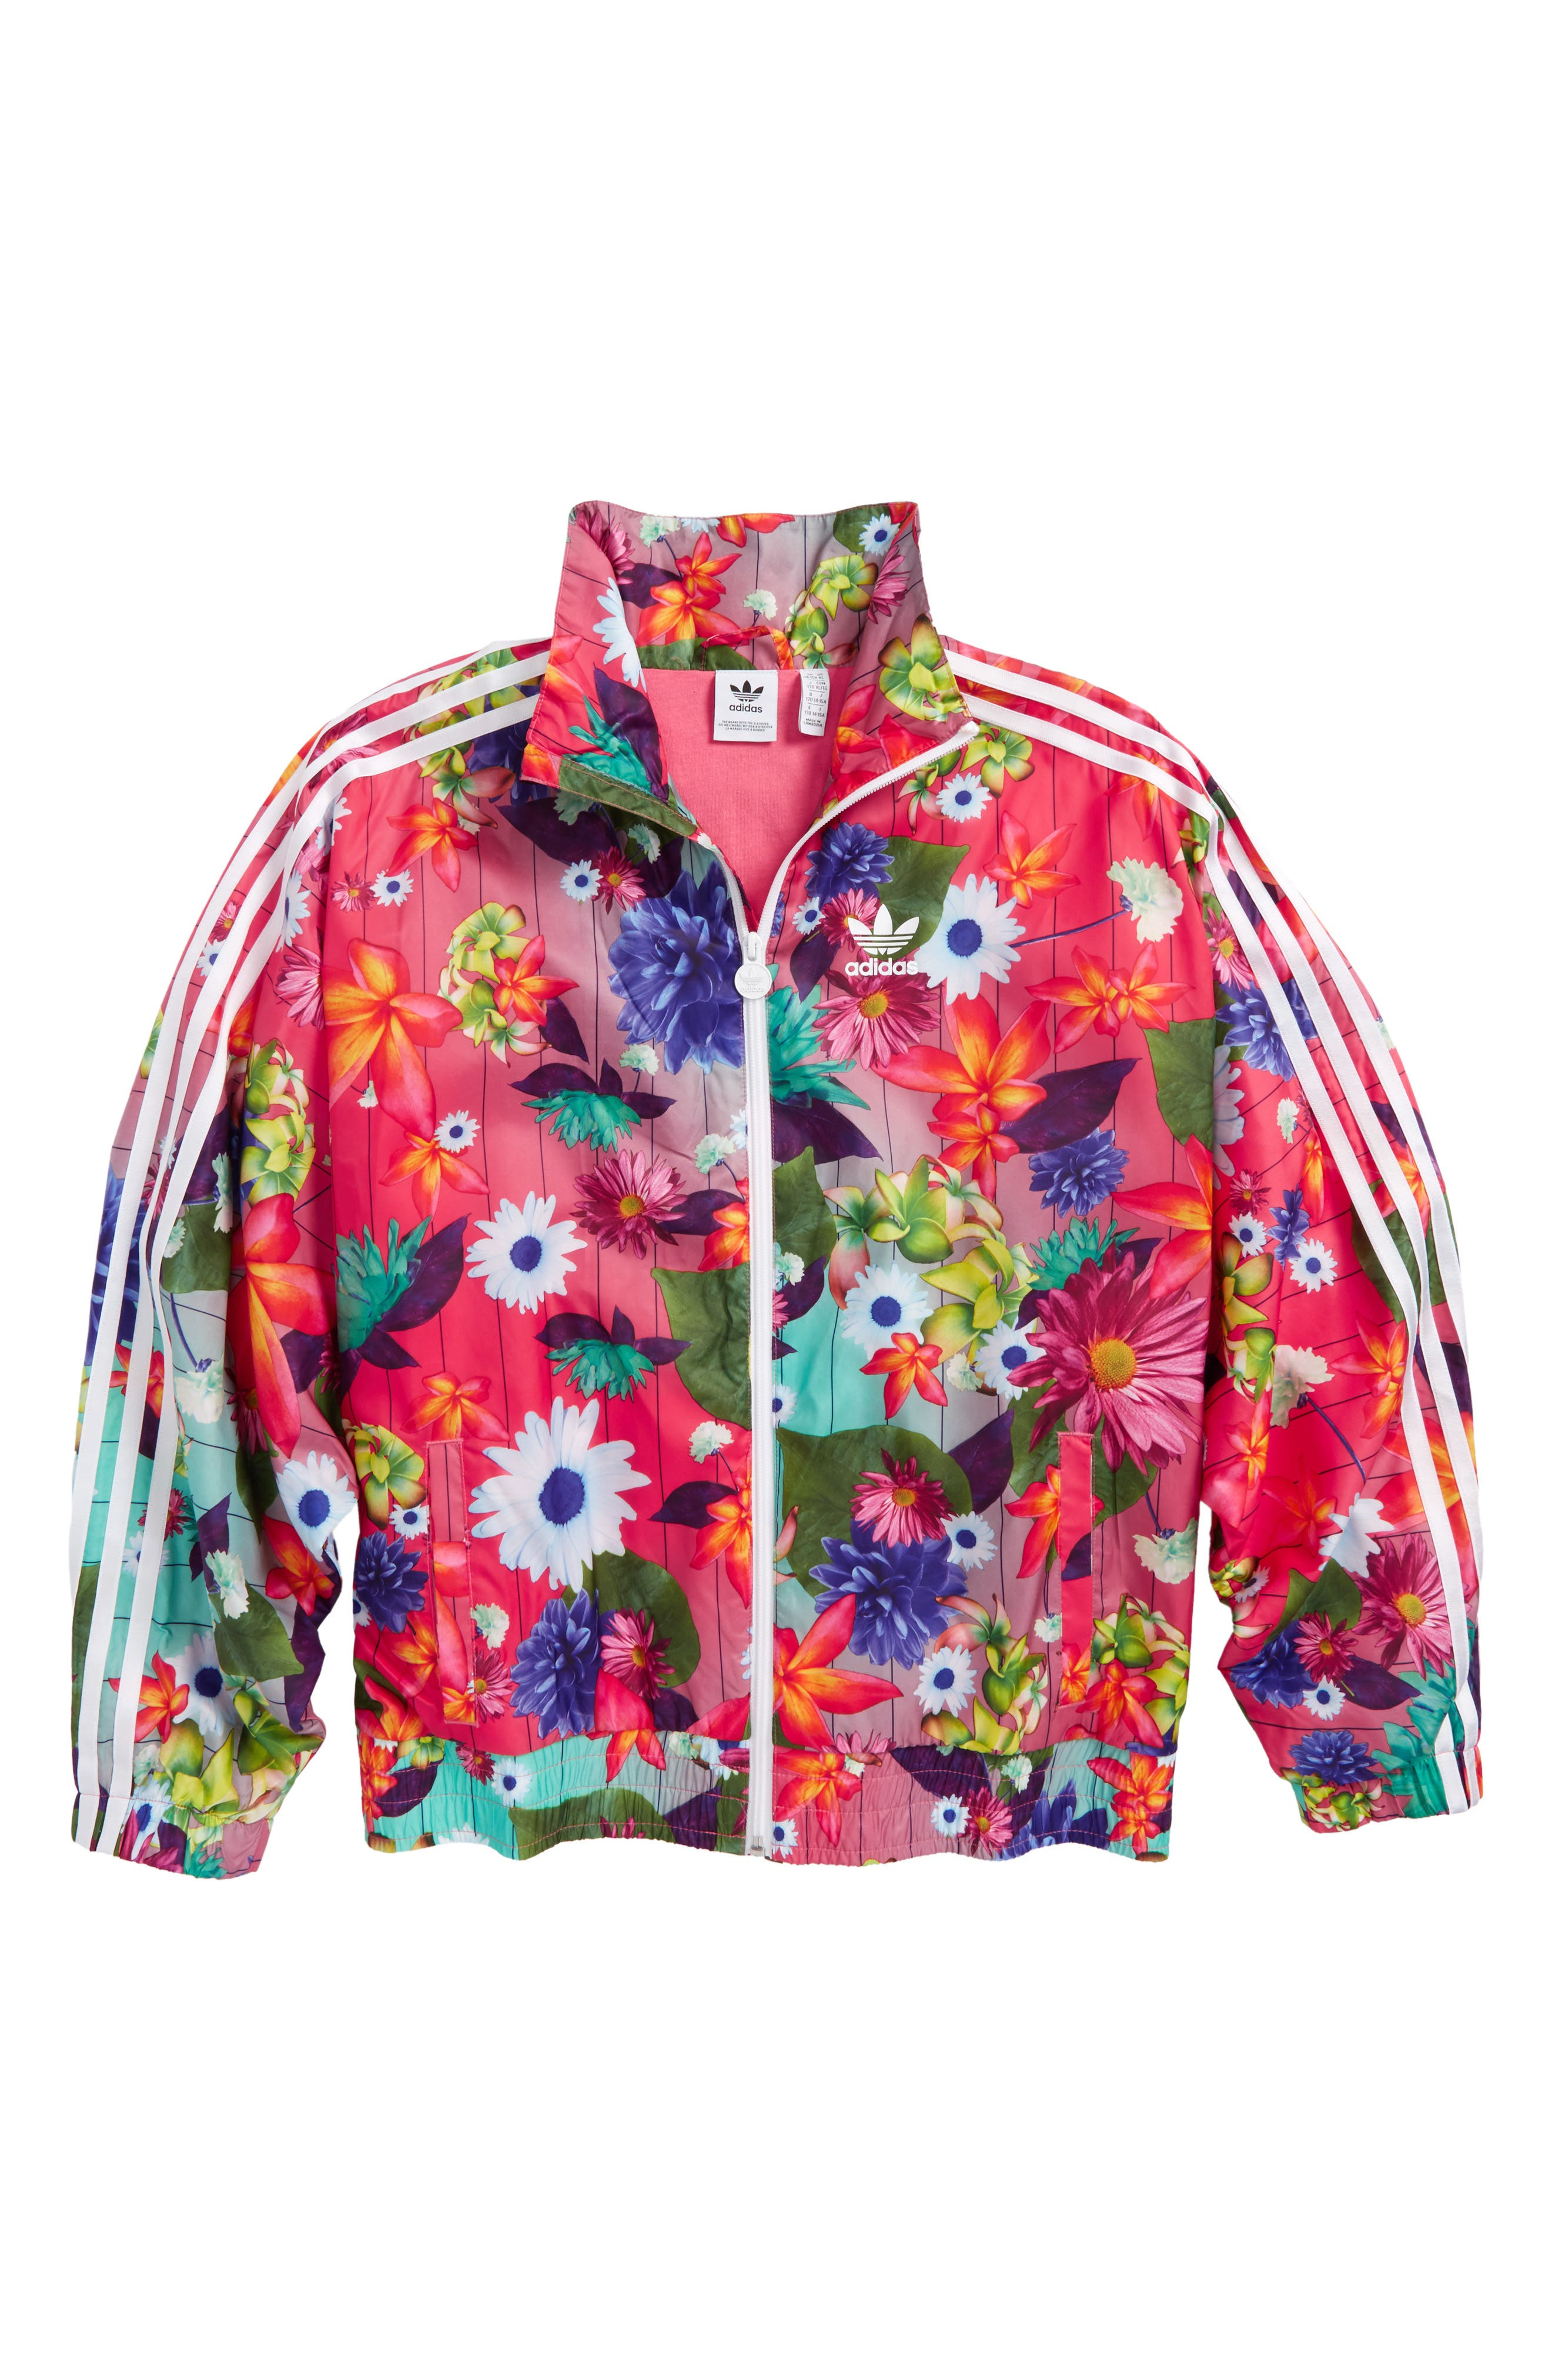 adidas Graphic Windbreaker Jacket,                             Main thumbnail 1, color,                             650